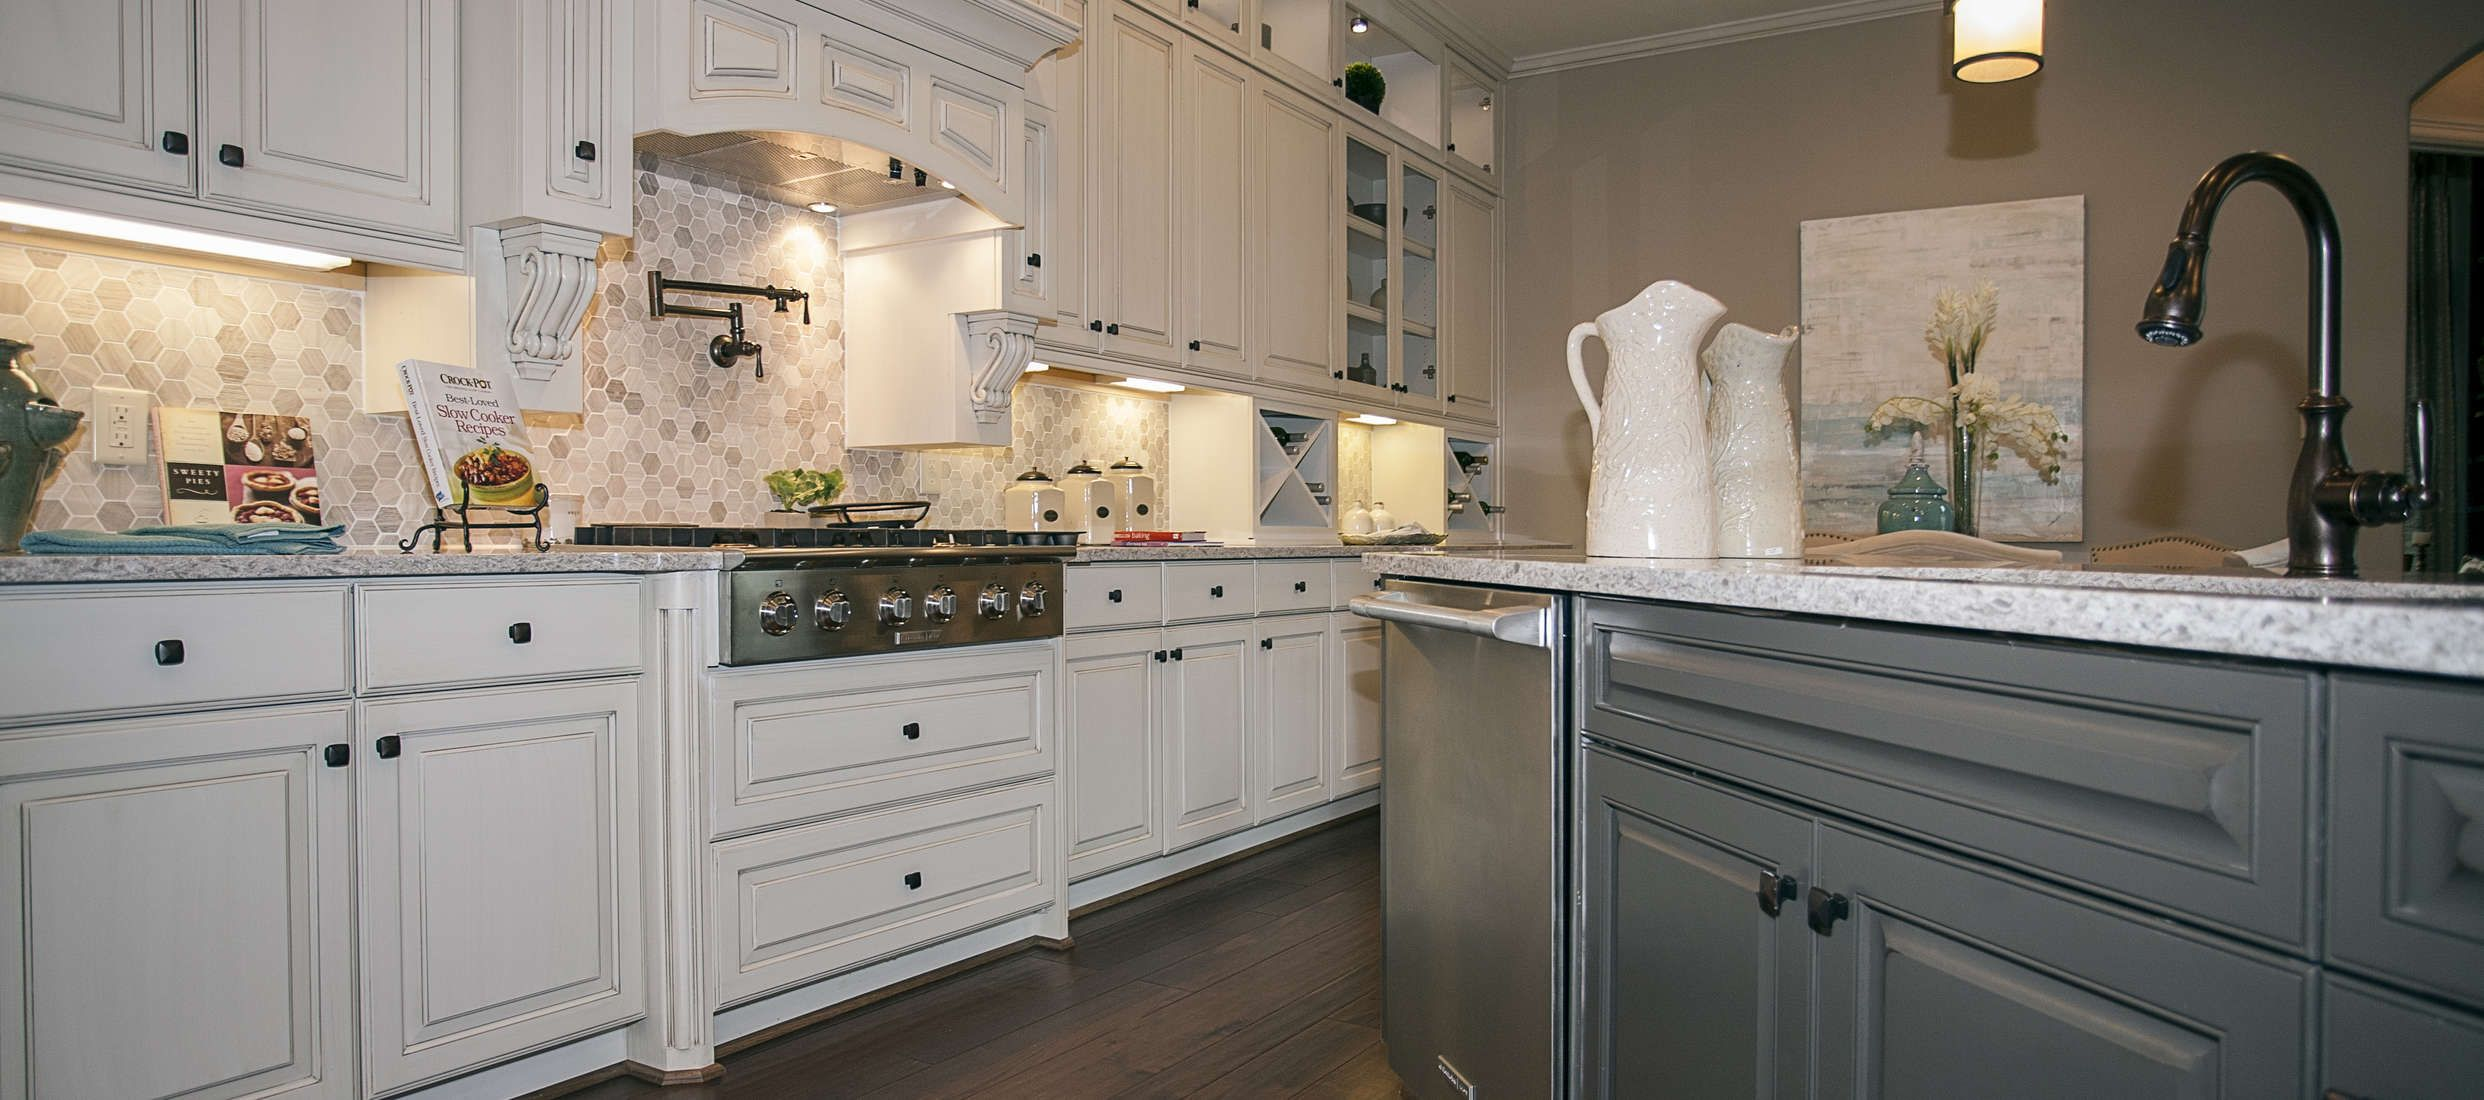 j kraft inc custom cabinets by houston cabinet company j kraft inc kitchen cabinet on j kitchen id=26536